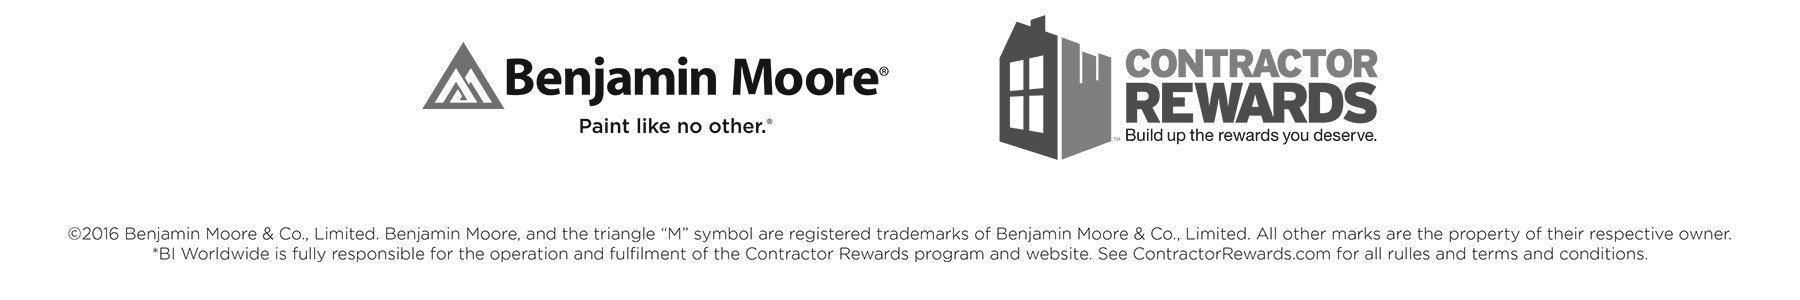 Benjamin Moore Contractor Rewards: Build up the rewards you deserve at your local Colorize store!